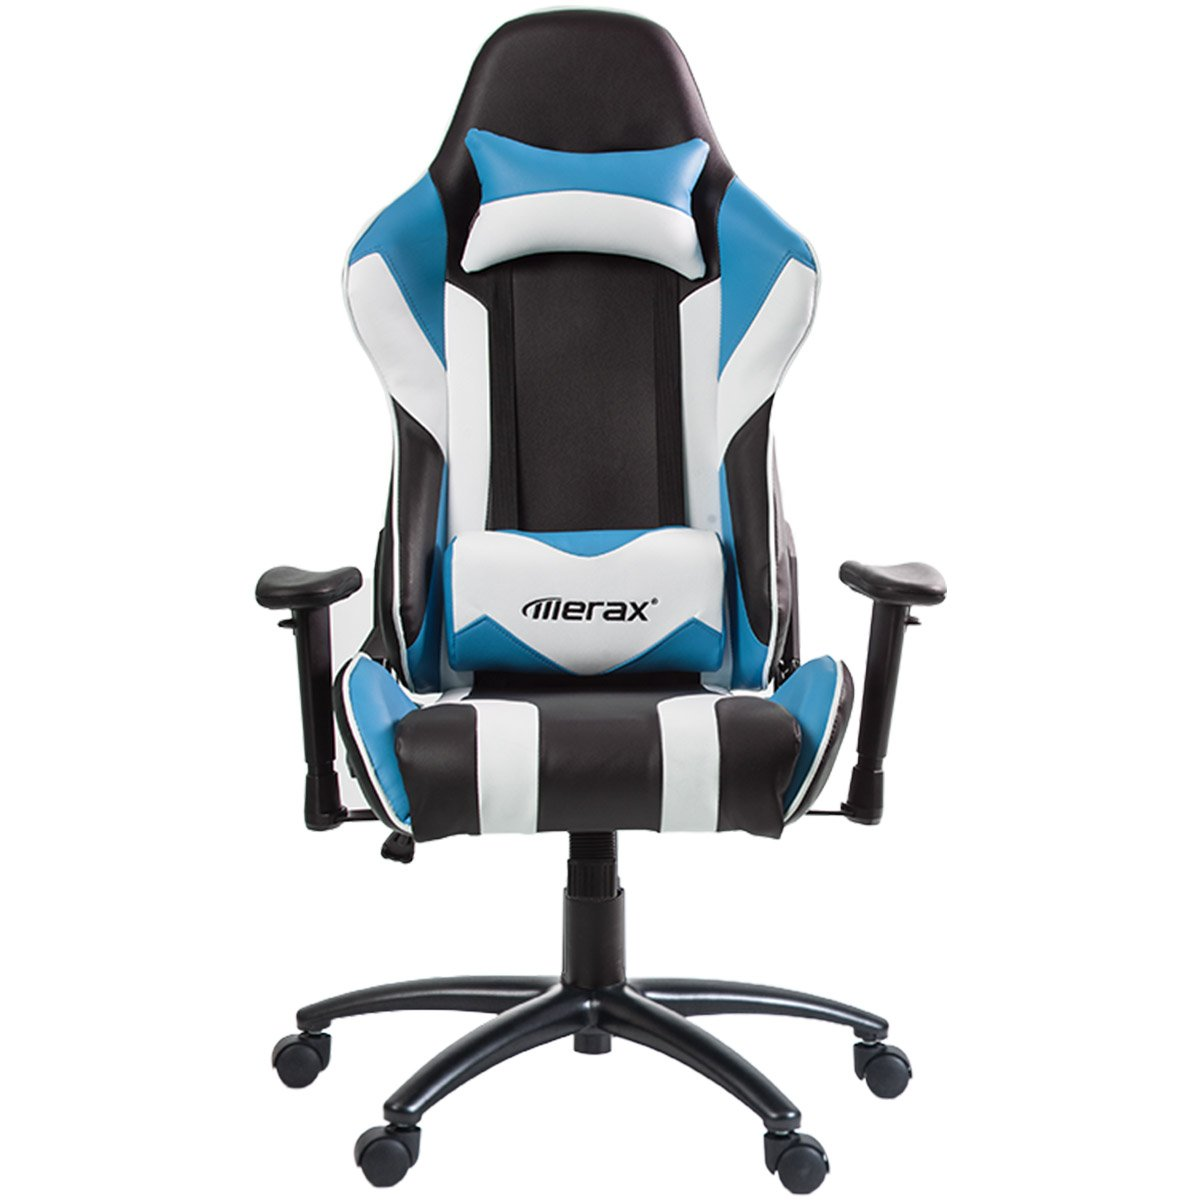 Merax High Back Racing Style Gaming Chair Metal Frame with Lumbar Support and Headrest (Blue)